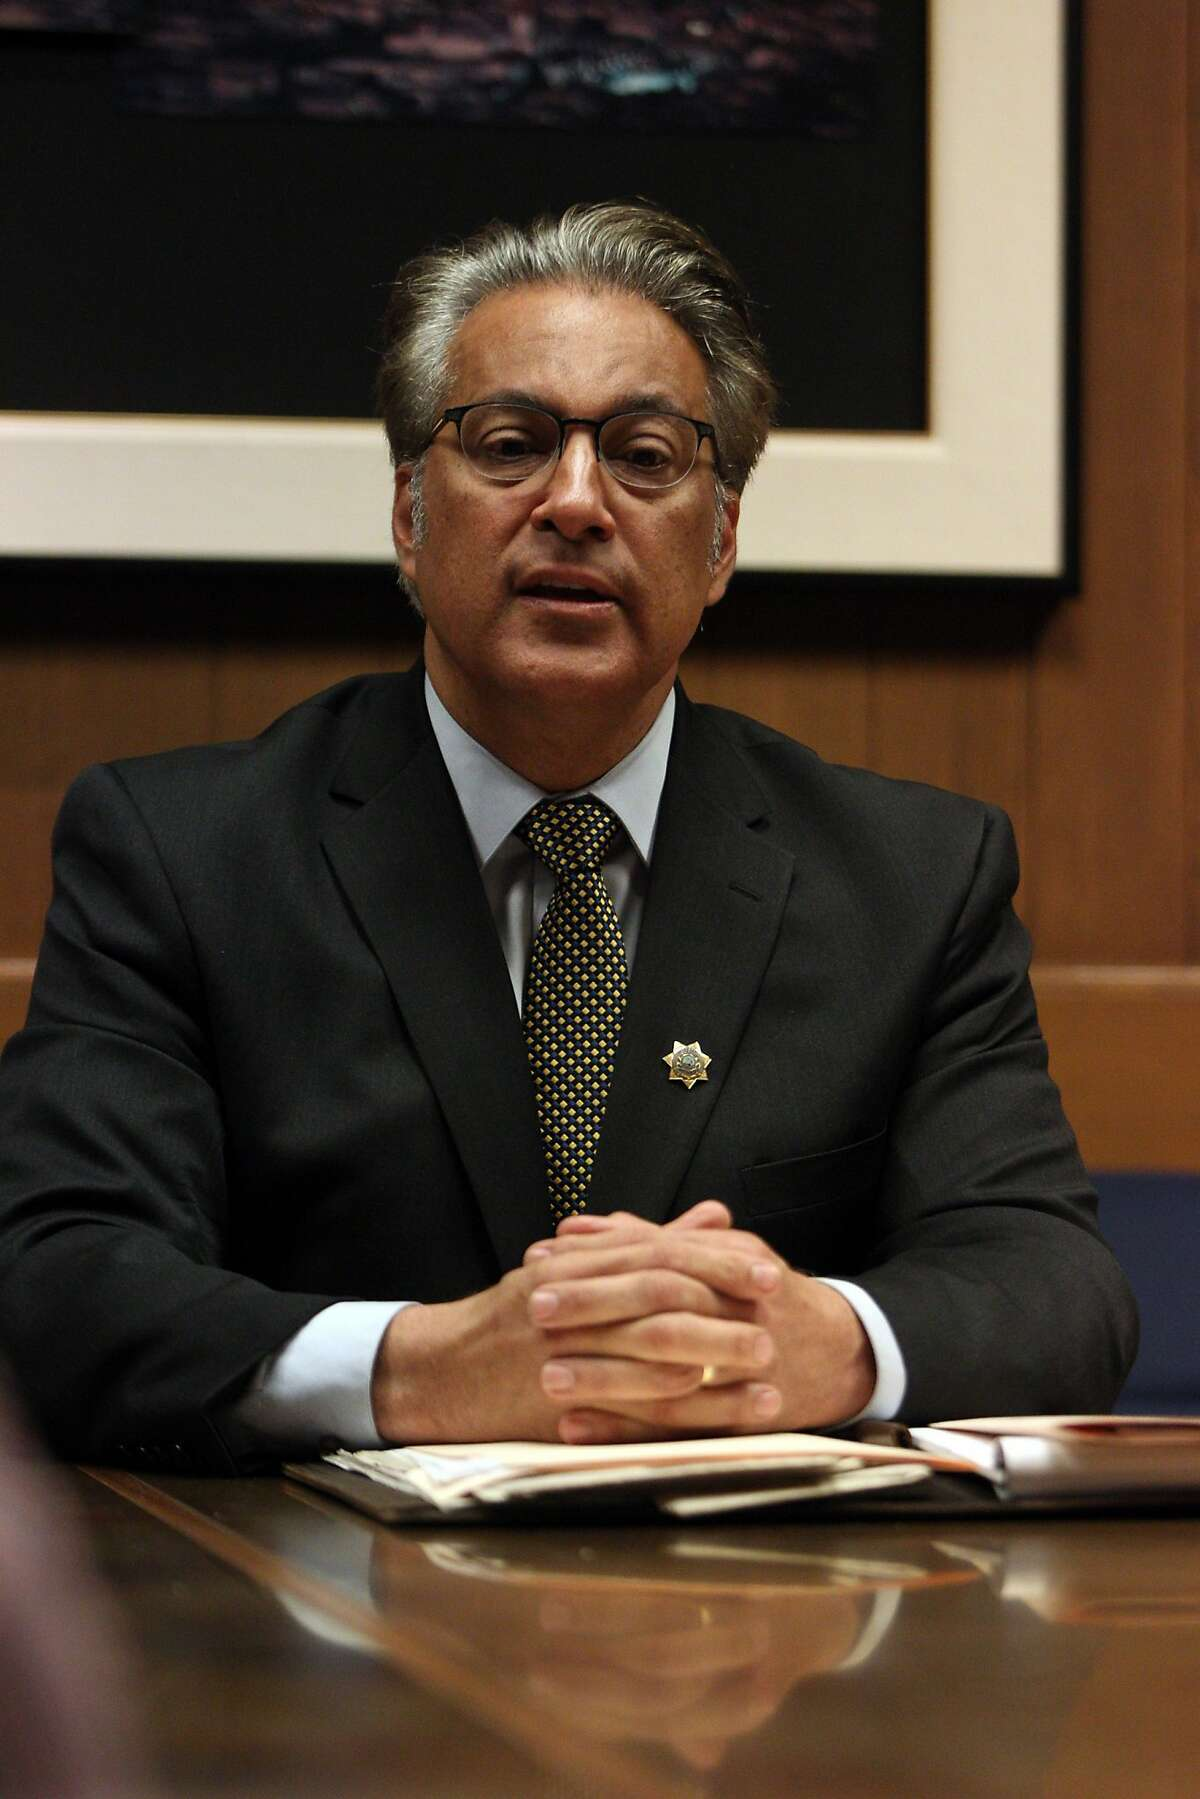 Incumbent San Francisco County Sheriff Ross Mirkarimi responding to questions during a debate hosted by the San Francisco Chronicle editorial board October 1, 2015.